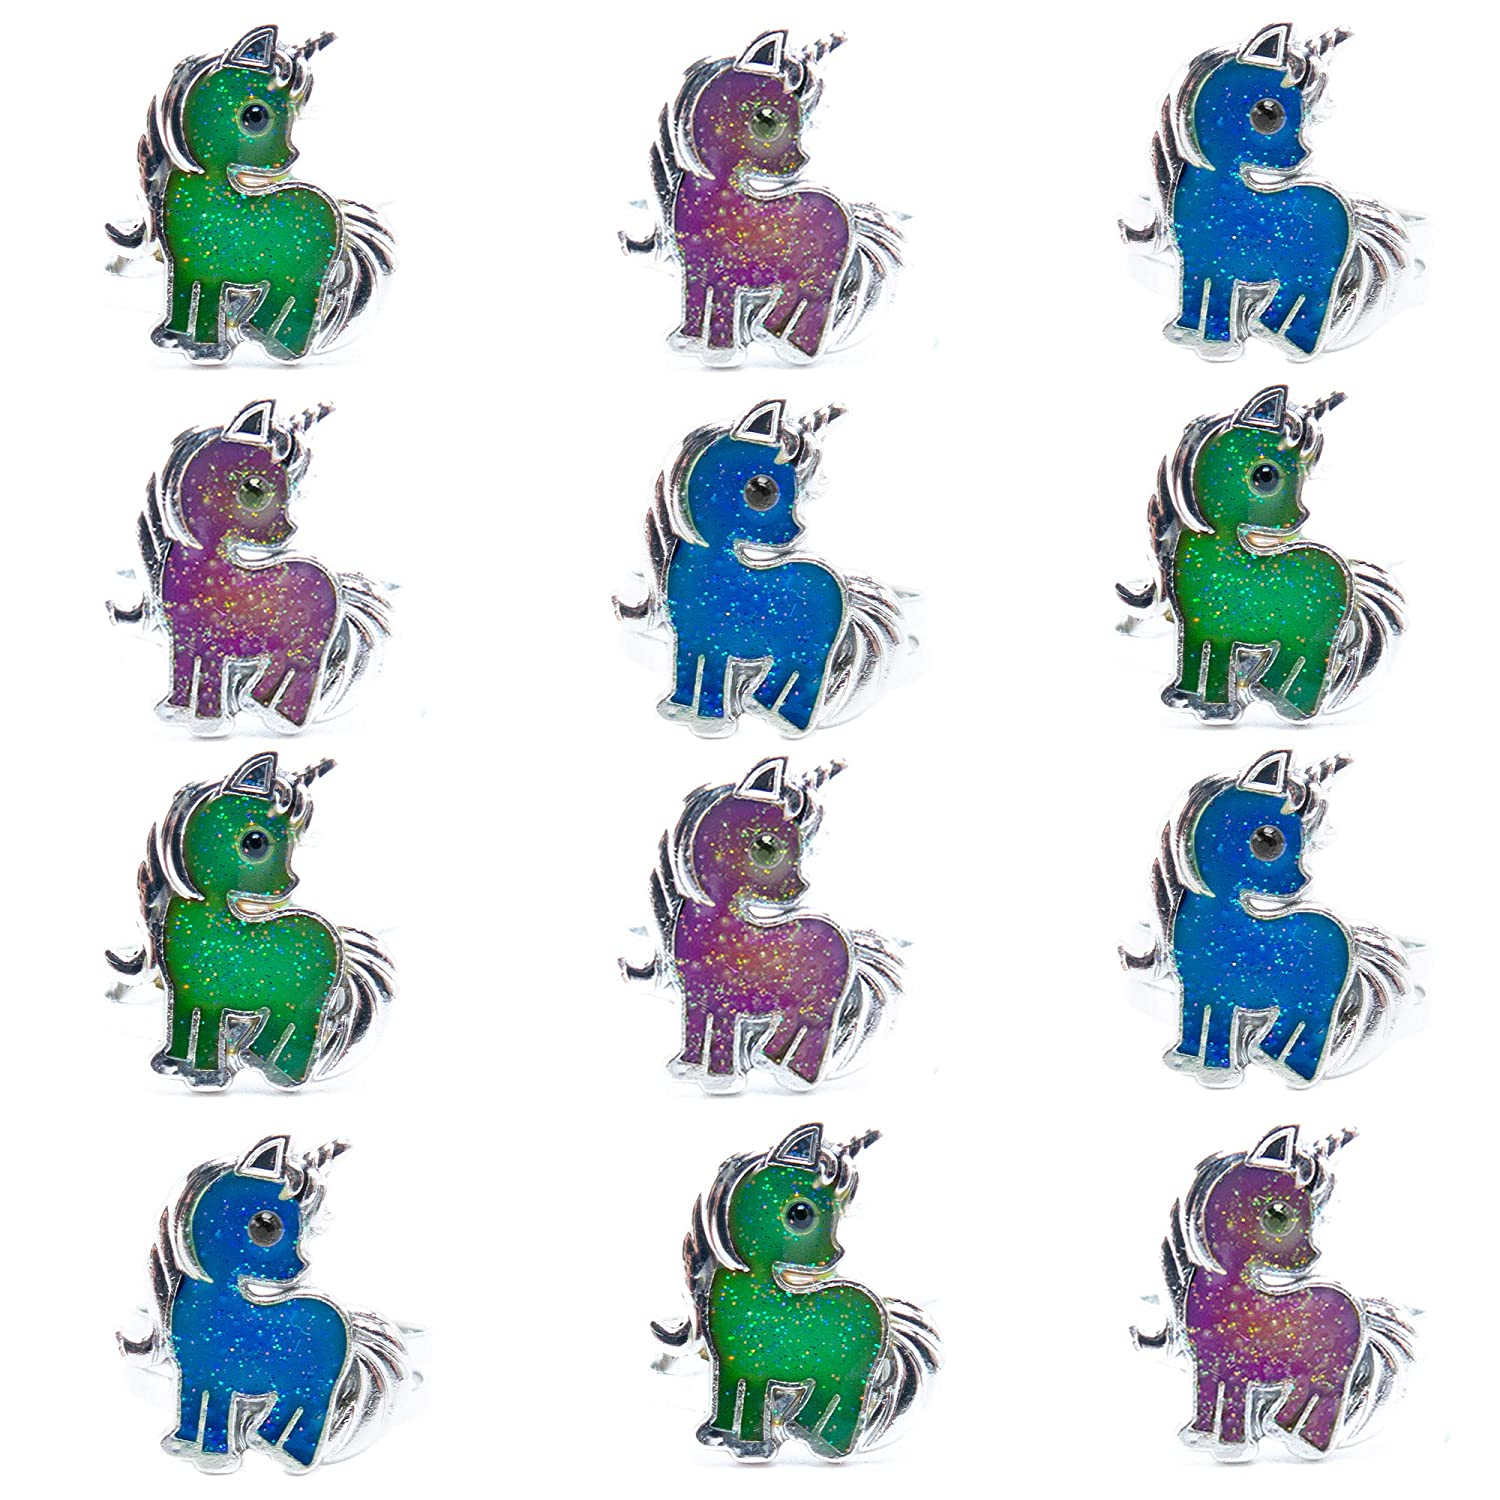 10498545 FROG SAC Unicorn Mood Rings for Little Girls and Women 12 PCs - Unicorn  Birthday Party Supplies and Favors for Kids - Color Changing Mood Ring Set  - ...